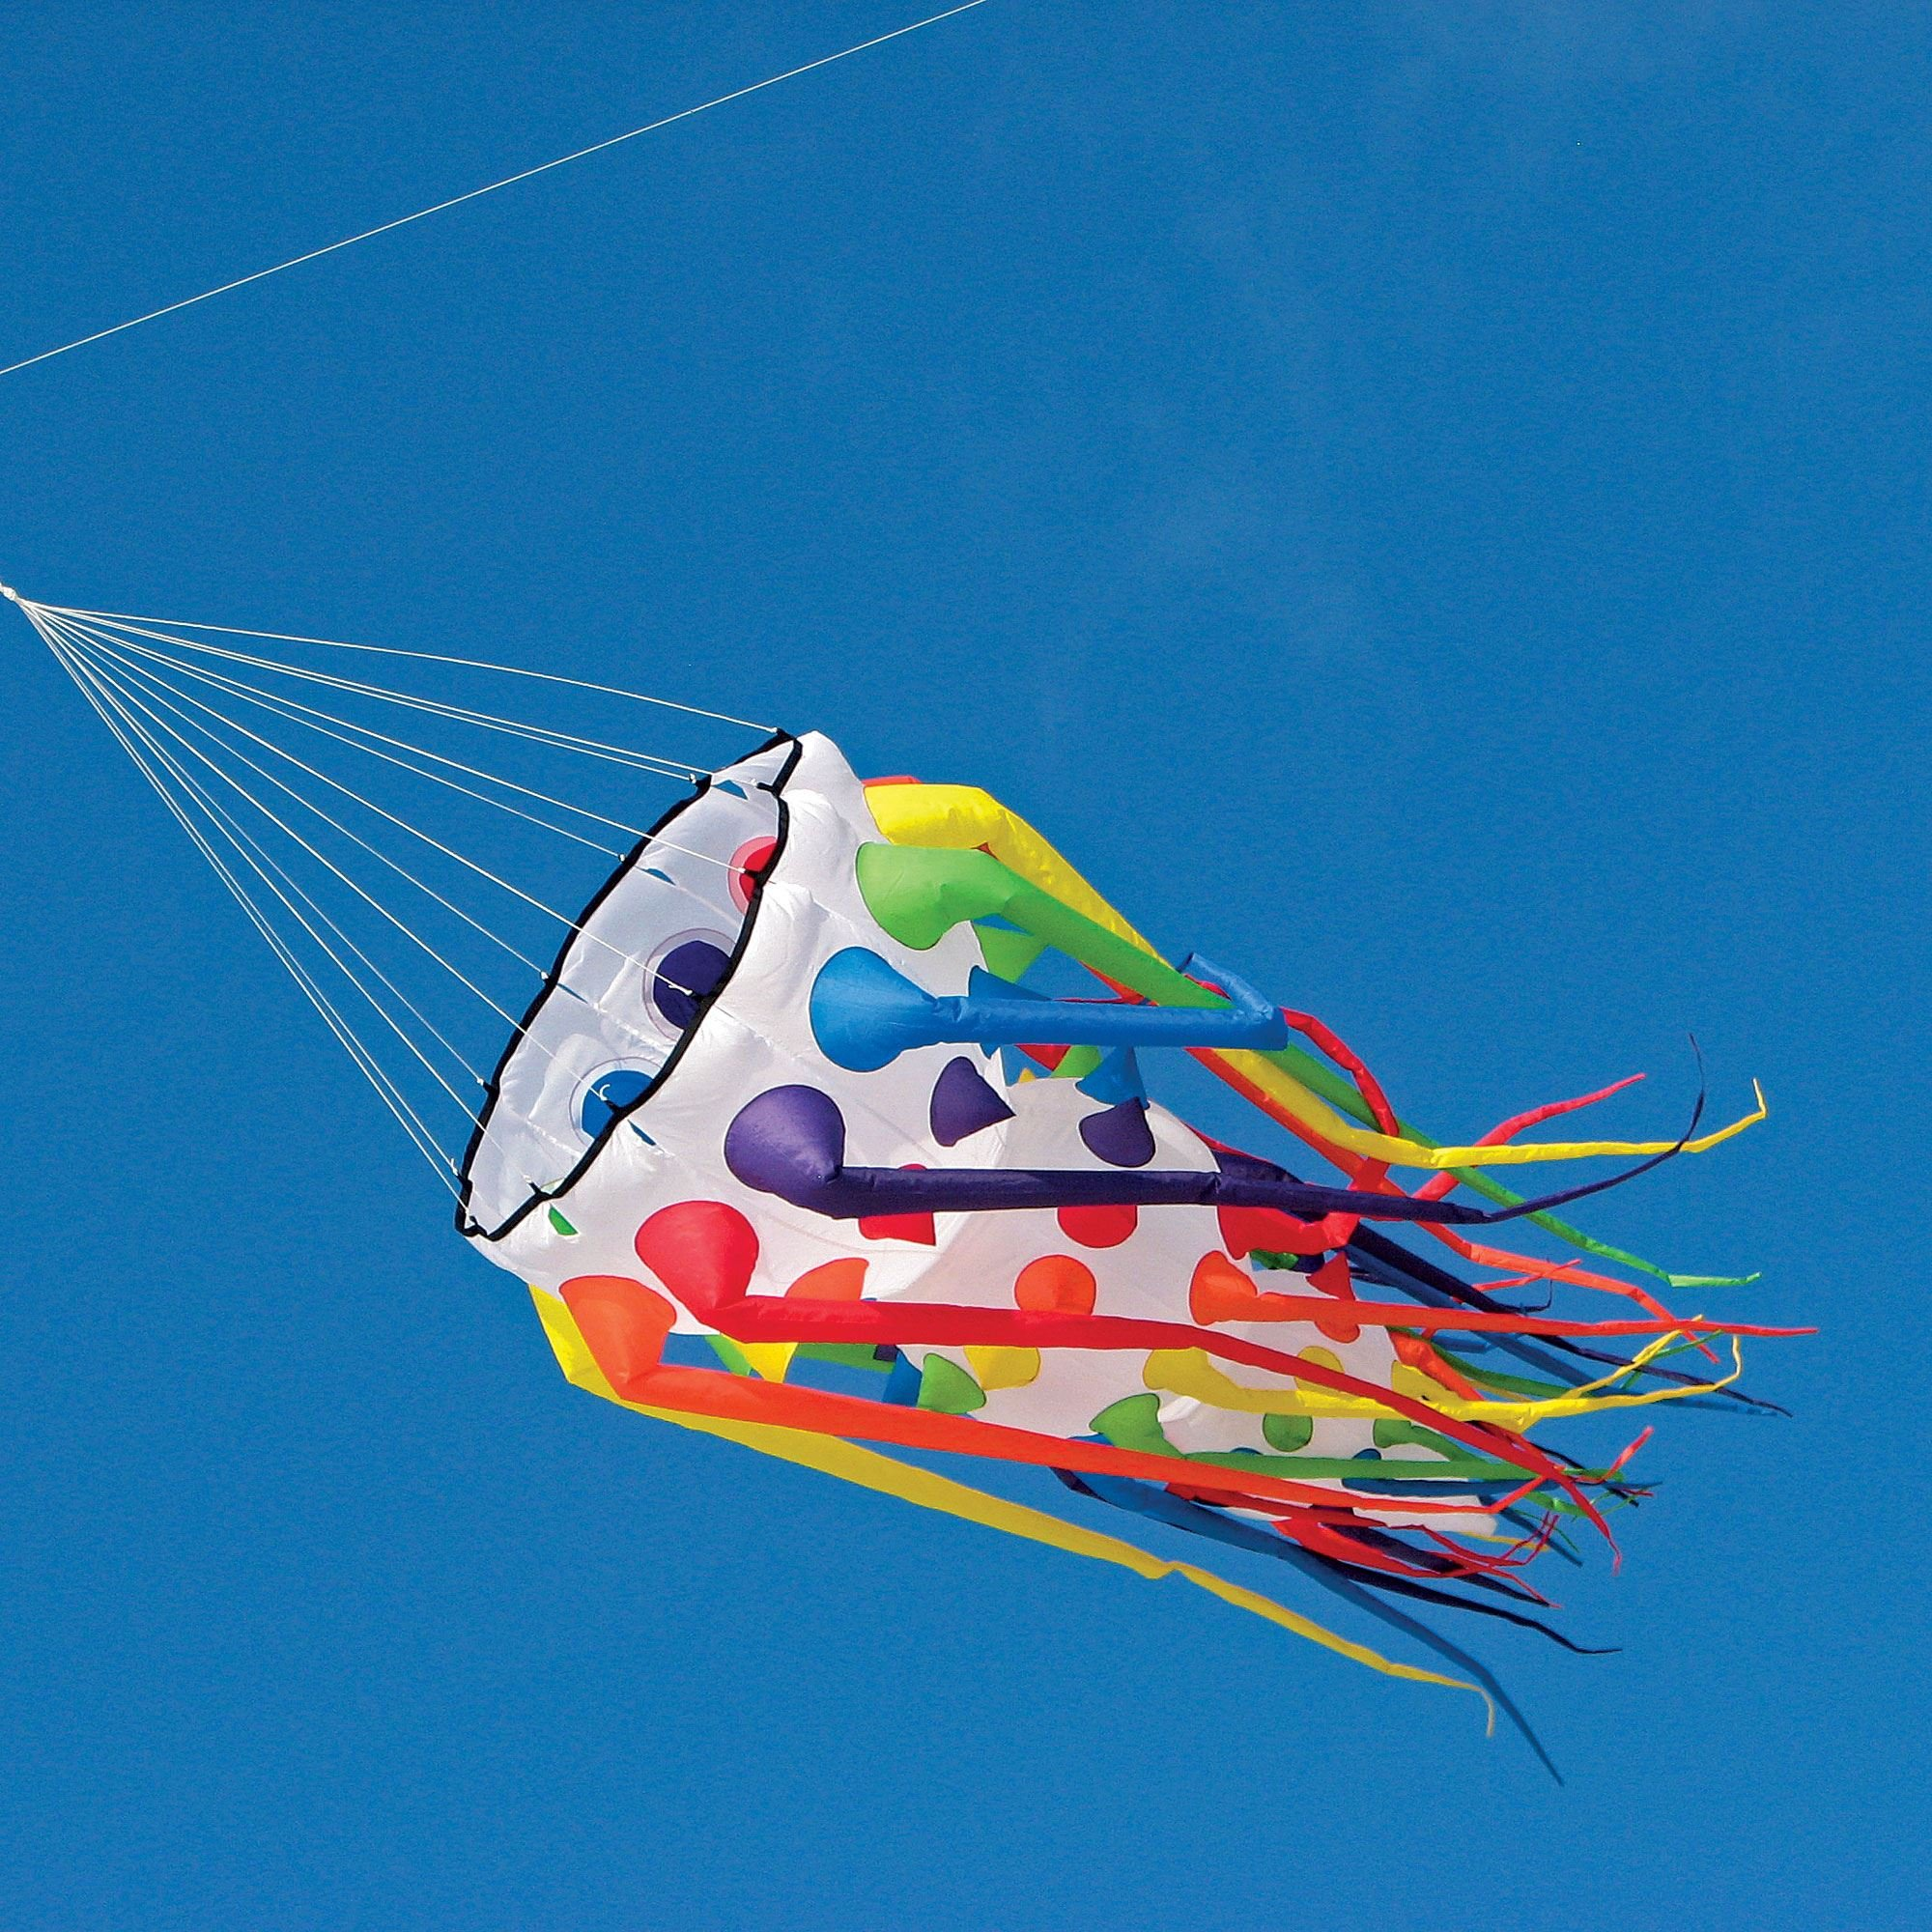 5-ft. Willi Koch Hydroid Inflatable Kite Accessory